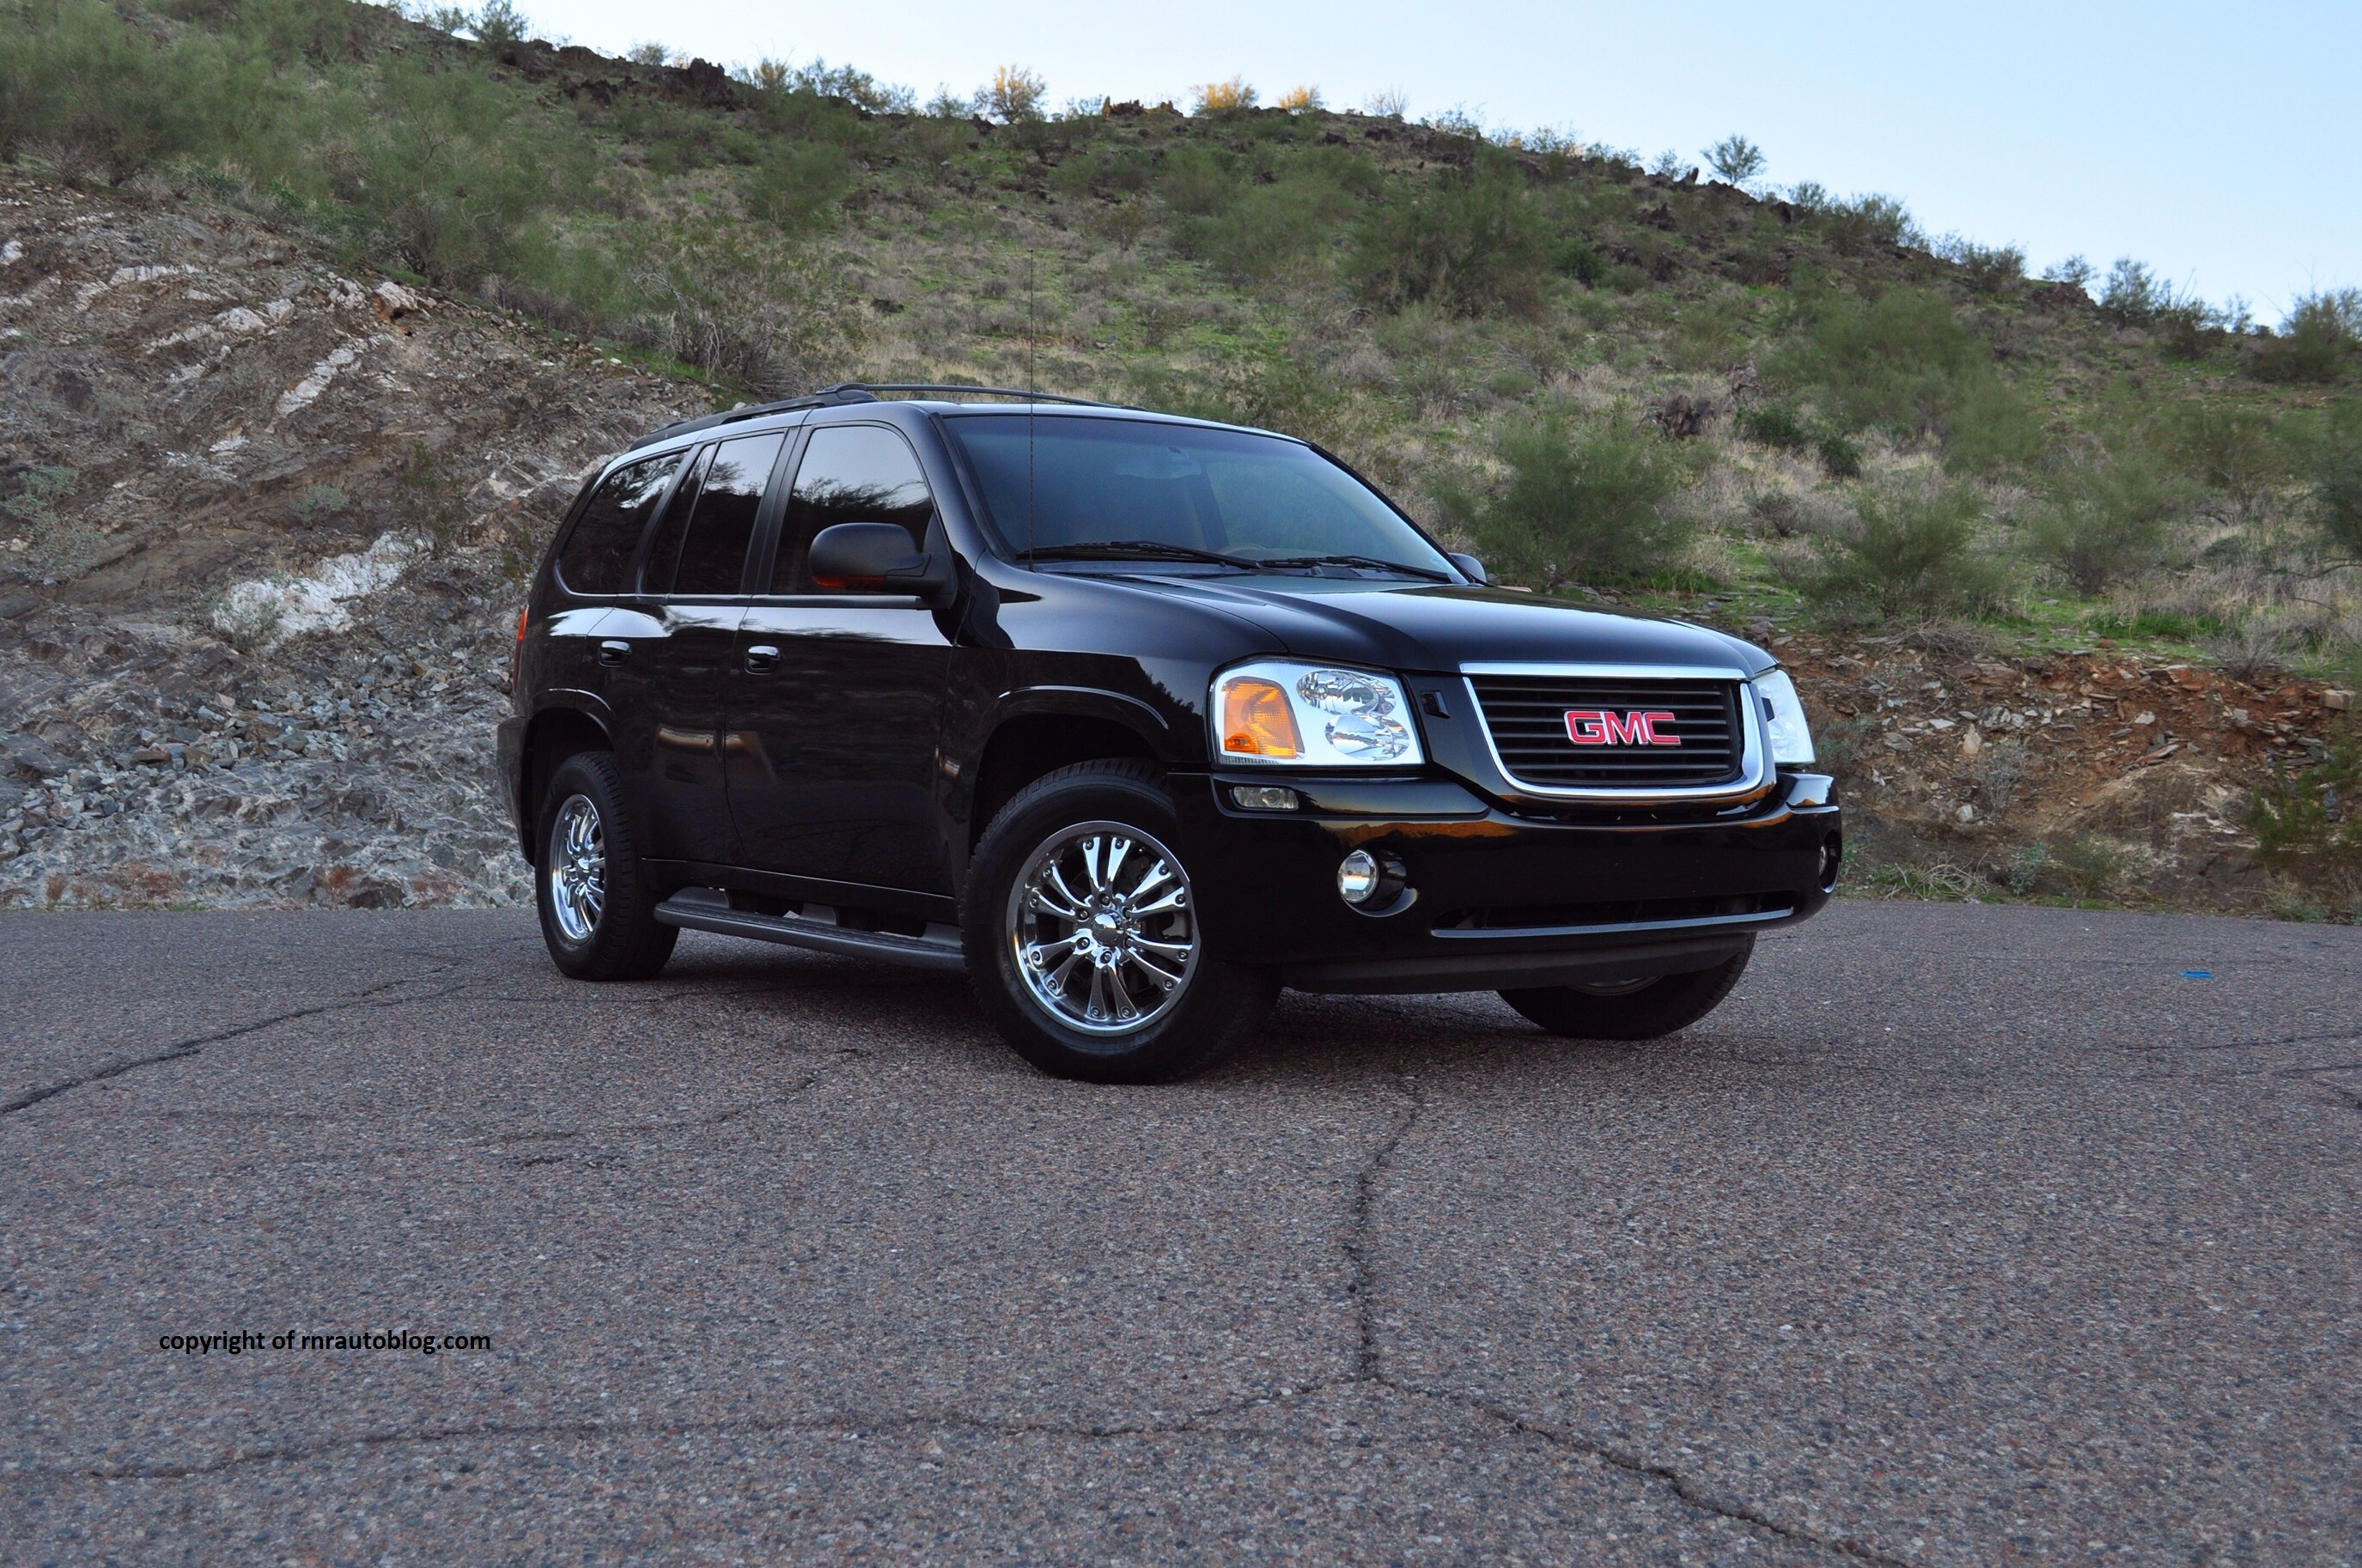 2003 gmc envoy slt review rnr automotive blog. Black Bedroom Furniture Sets. Home Design Ideas